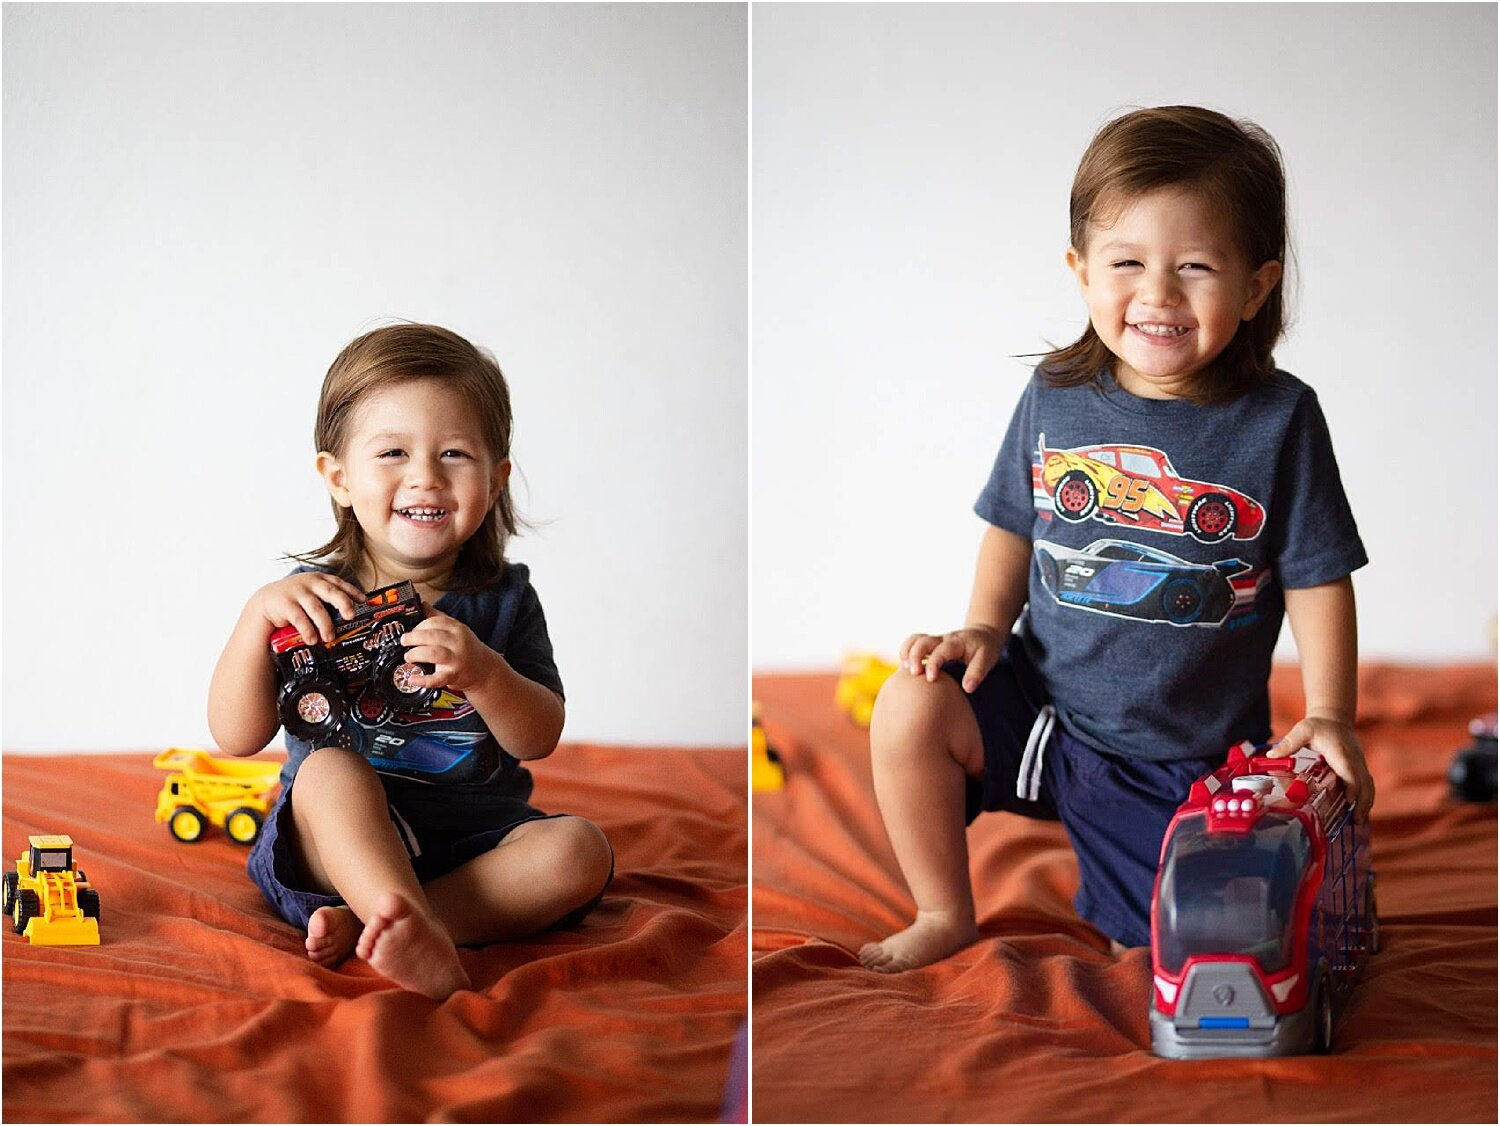 photographing-toddlers-under-5-children-portrait-photographer